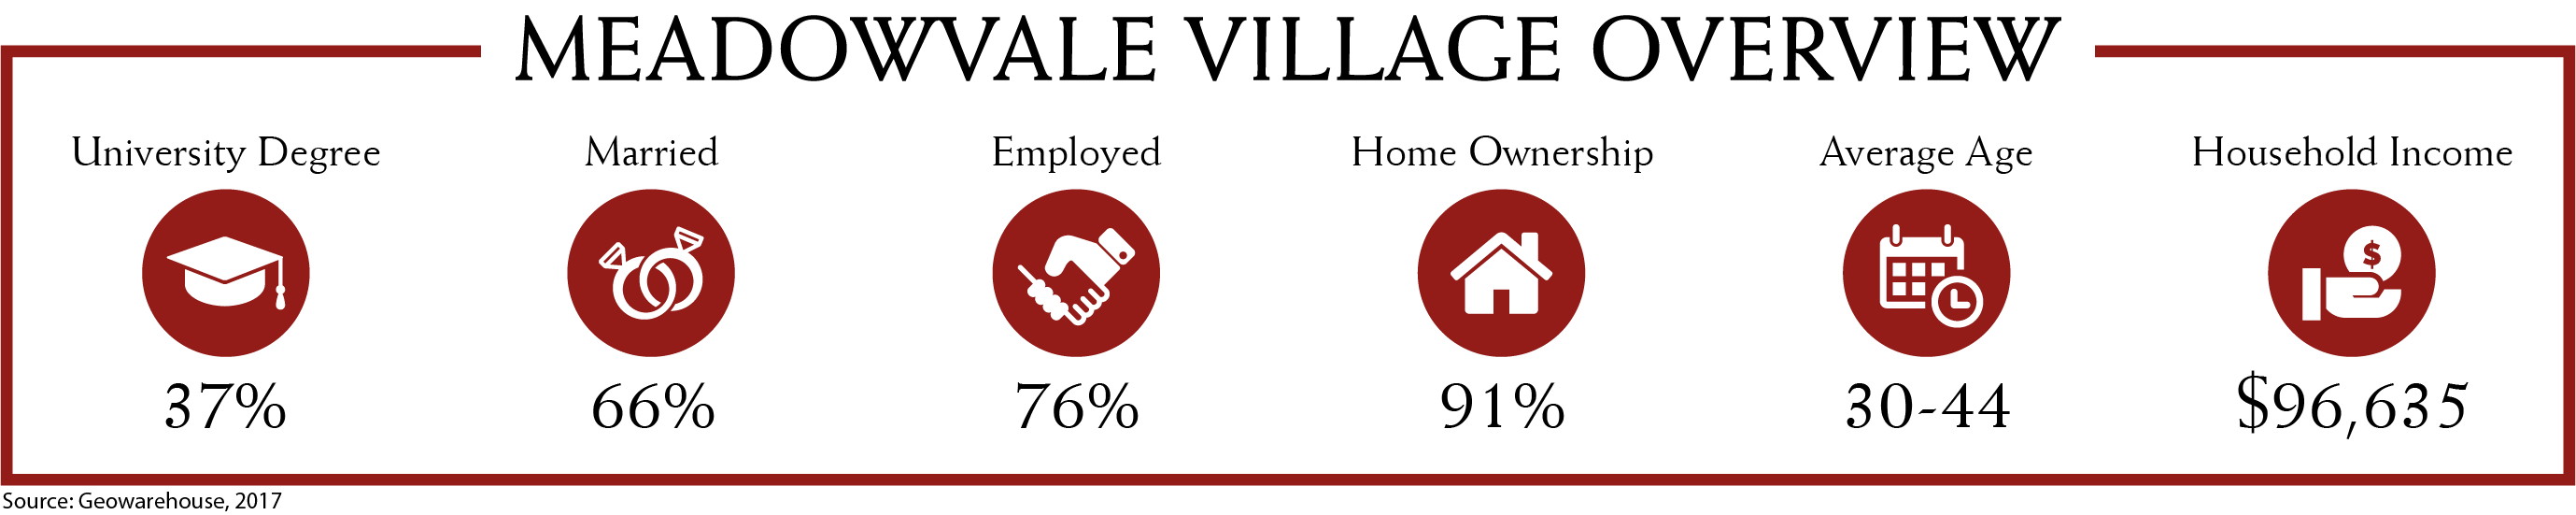 Meadowvale Village Demographics